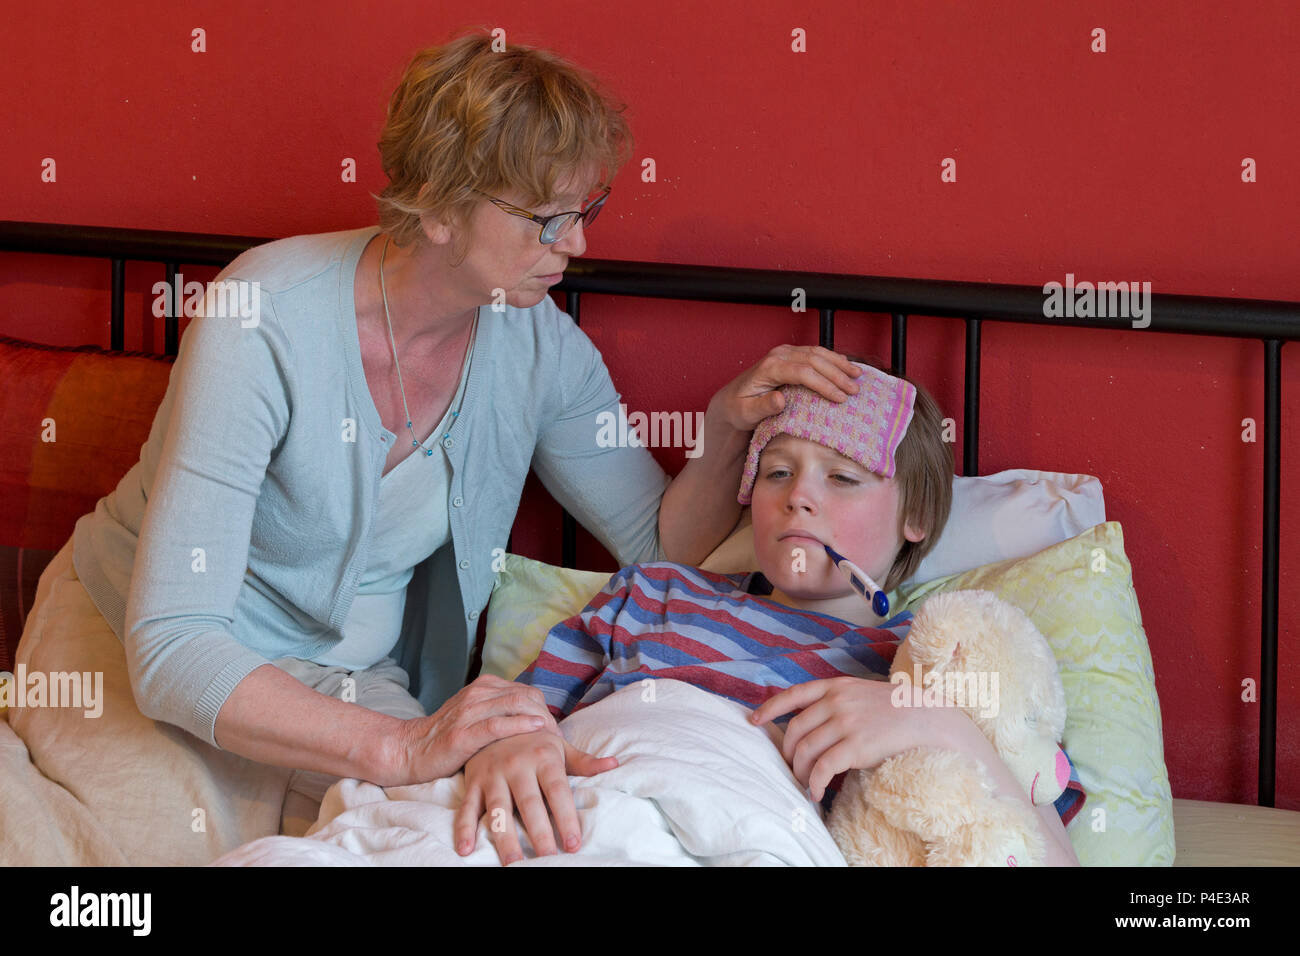 mother comforting her ill son in his bed - Stock Image